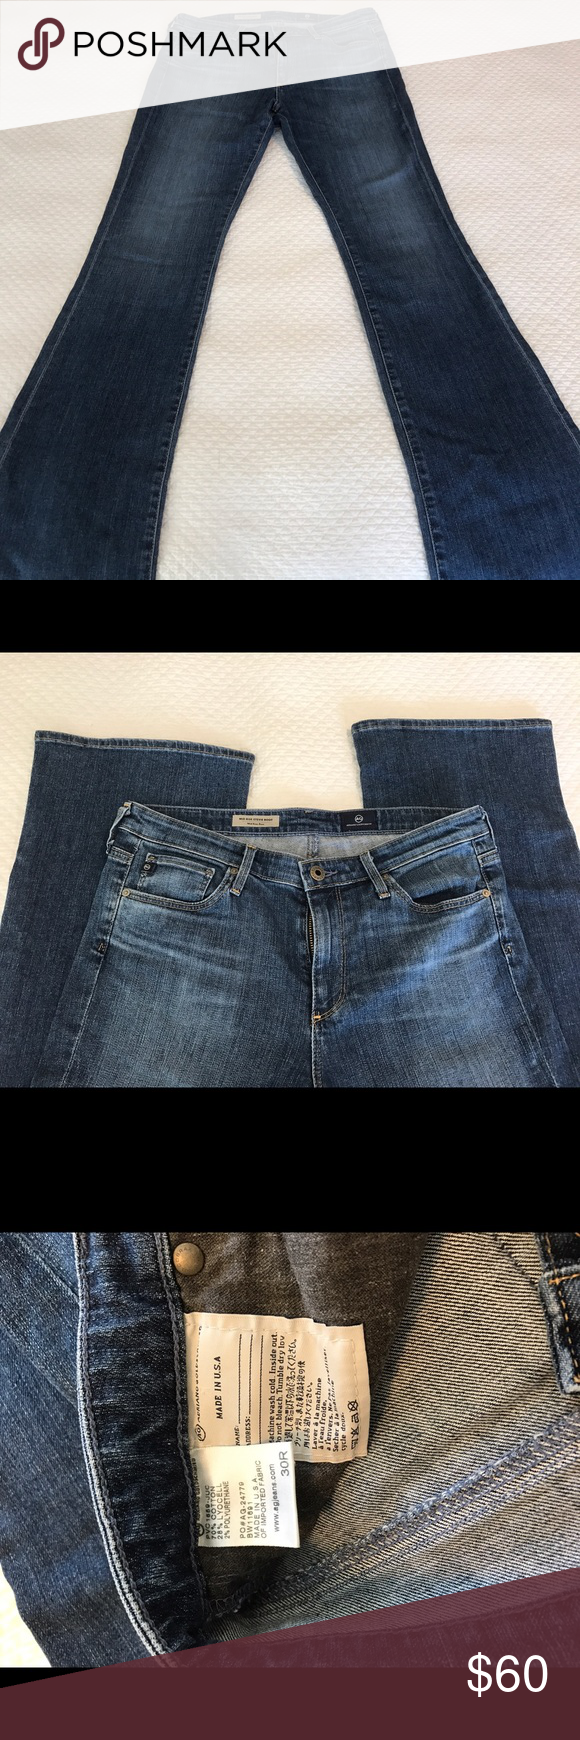 """Ag jeans """"Mid-rise Stevie Boot"""" NWOT I bought these and never wore them. They are soft denim and in excellent condition. AG Adriano Goldschmied Jeans"""